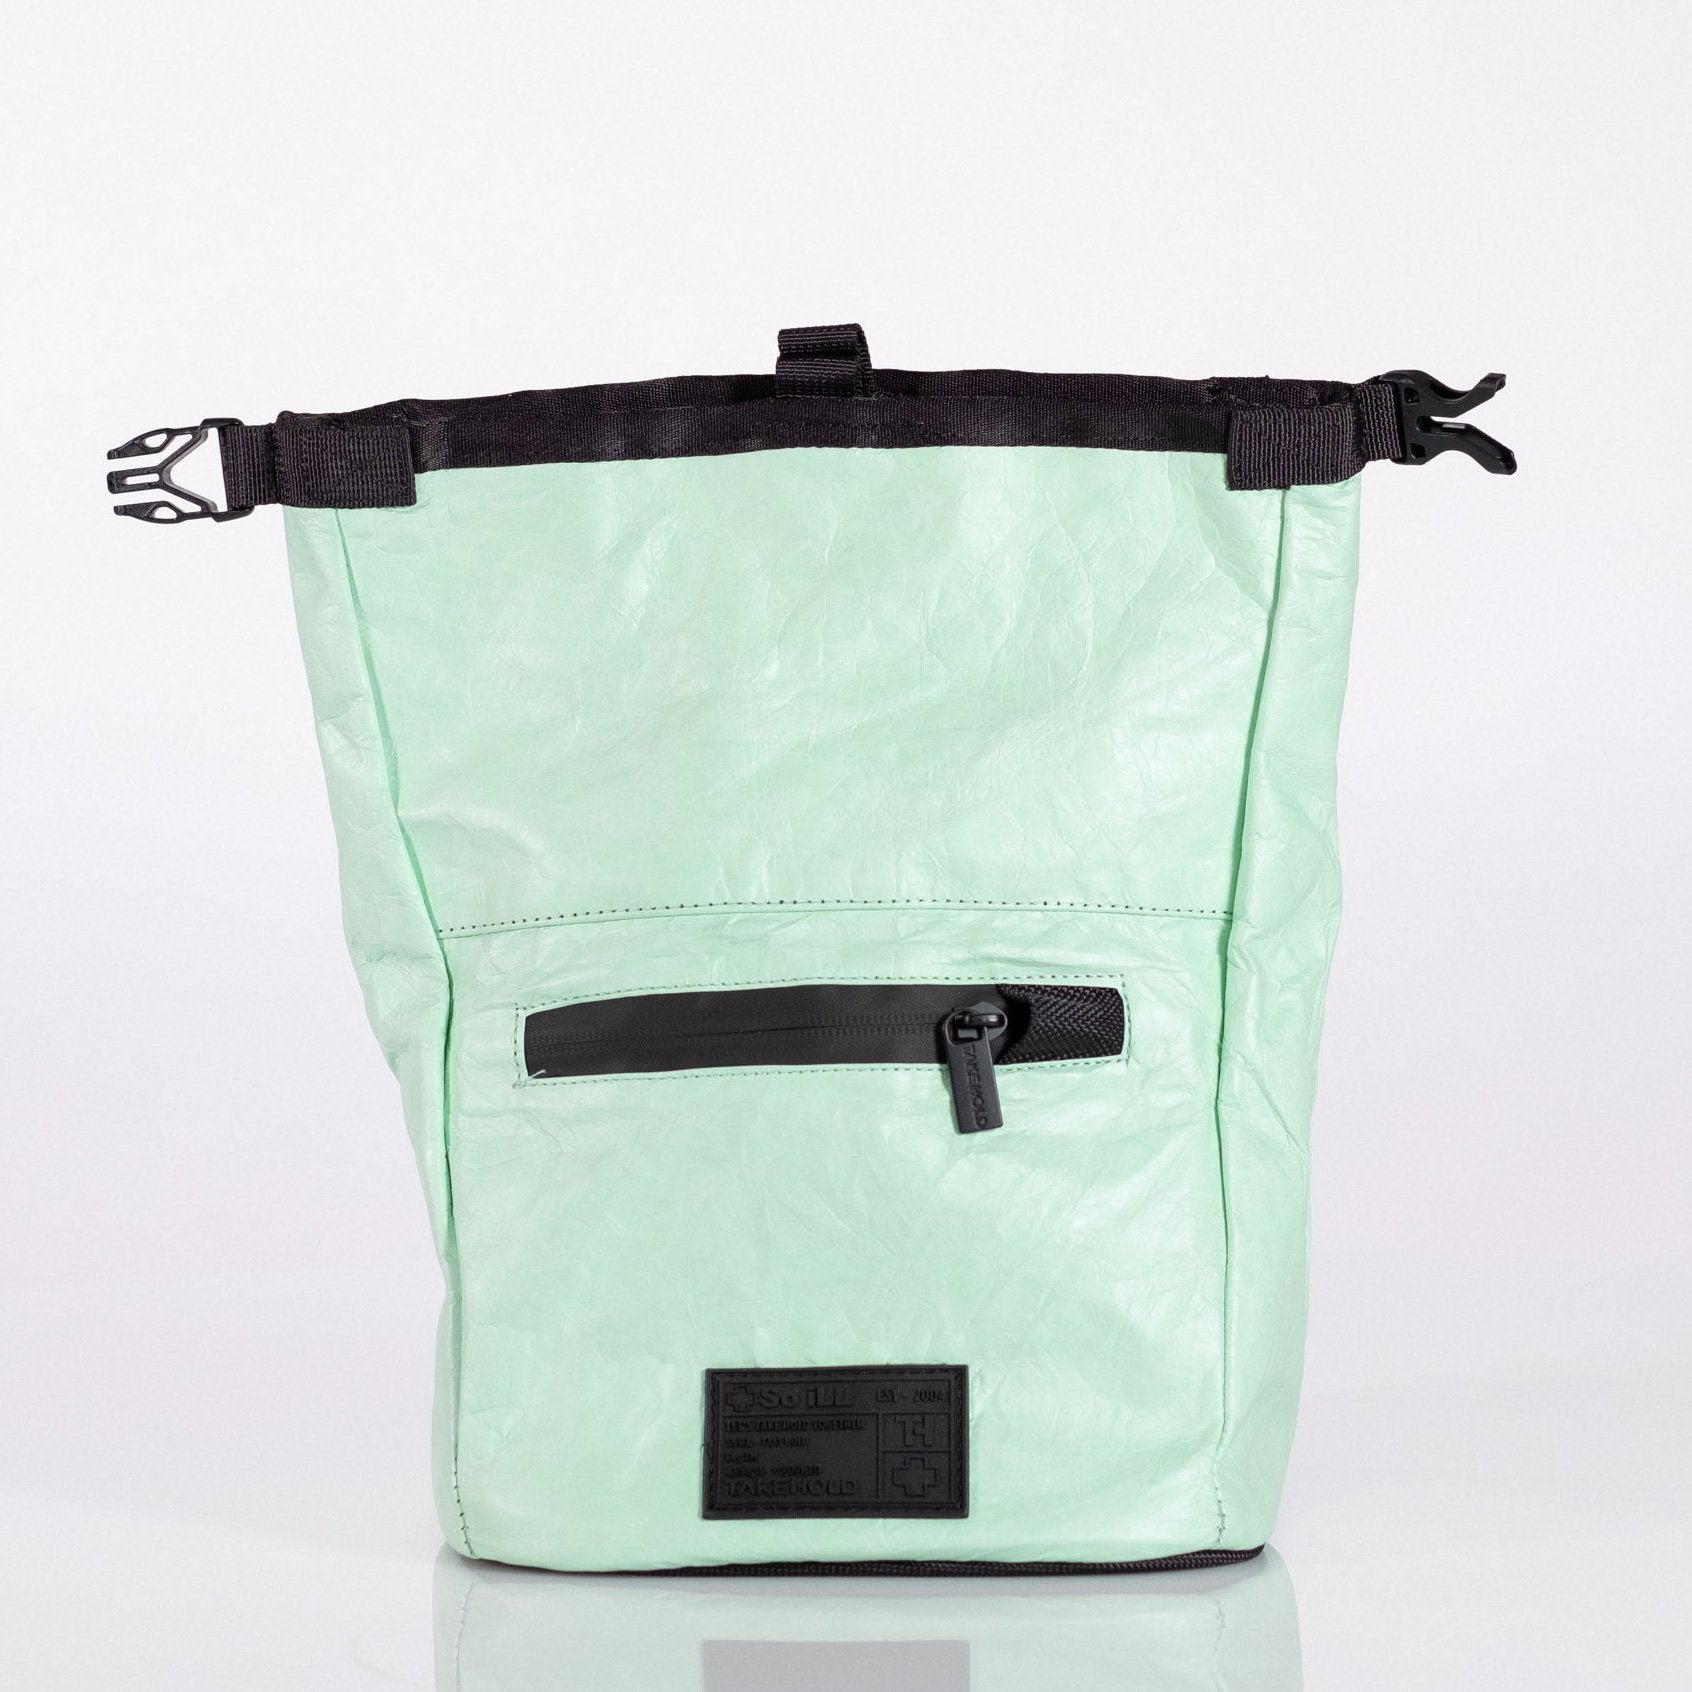 So iLL Tyvek Rolldown Chalk Bucket – Seafoam Bags